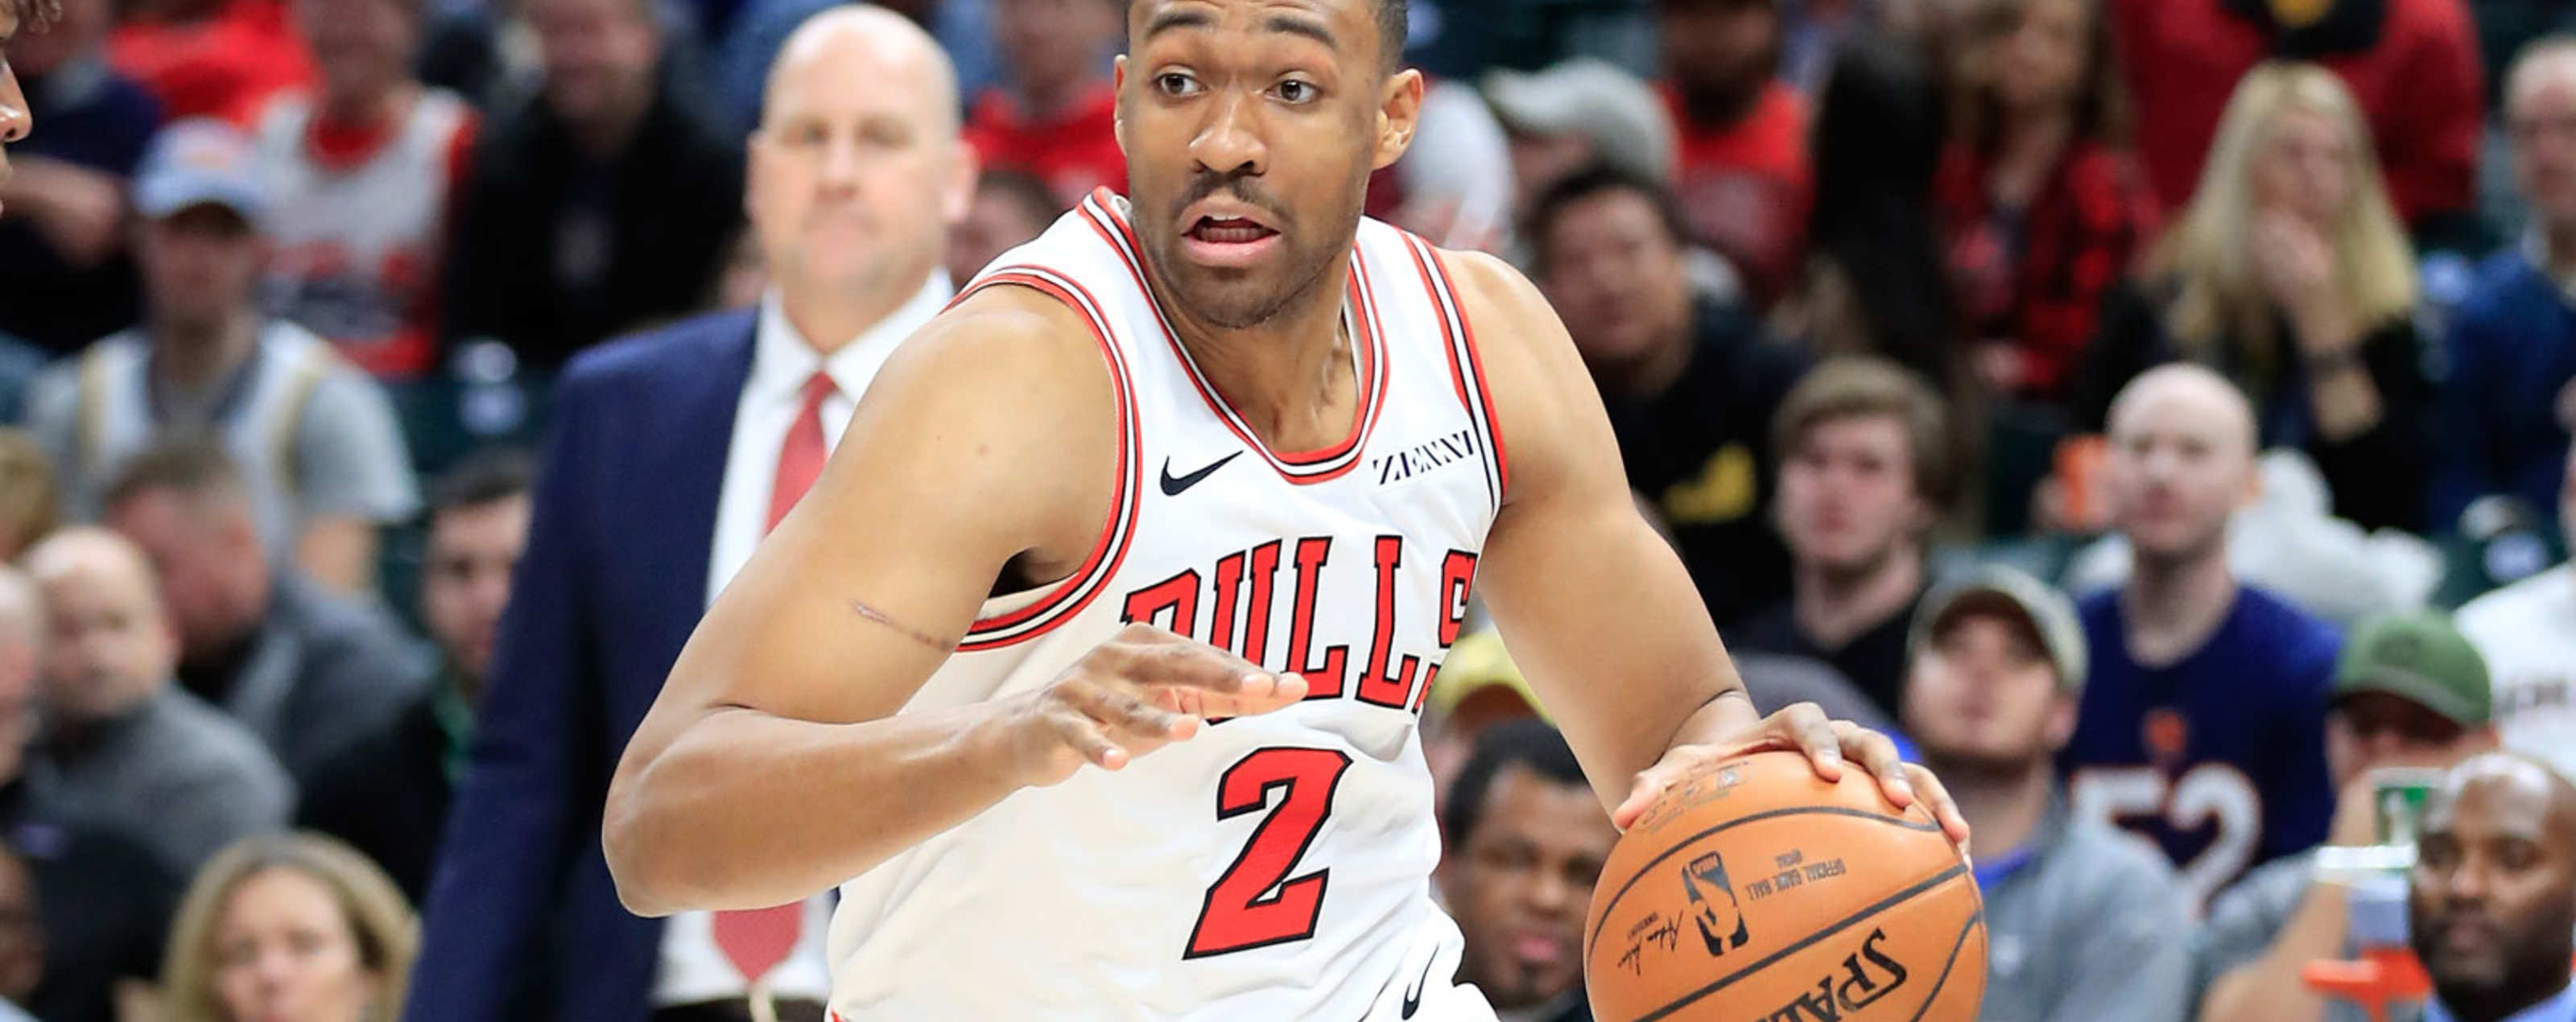 chuck's daily check in - 12.06.18 | chicago bulls